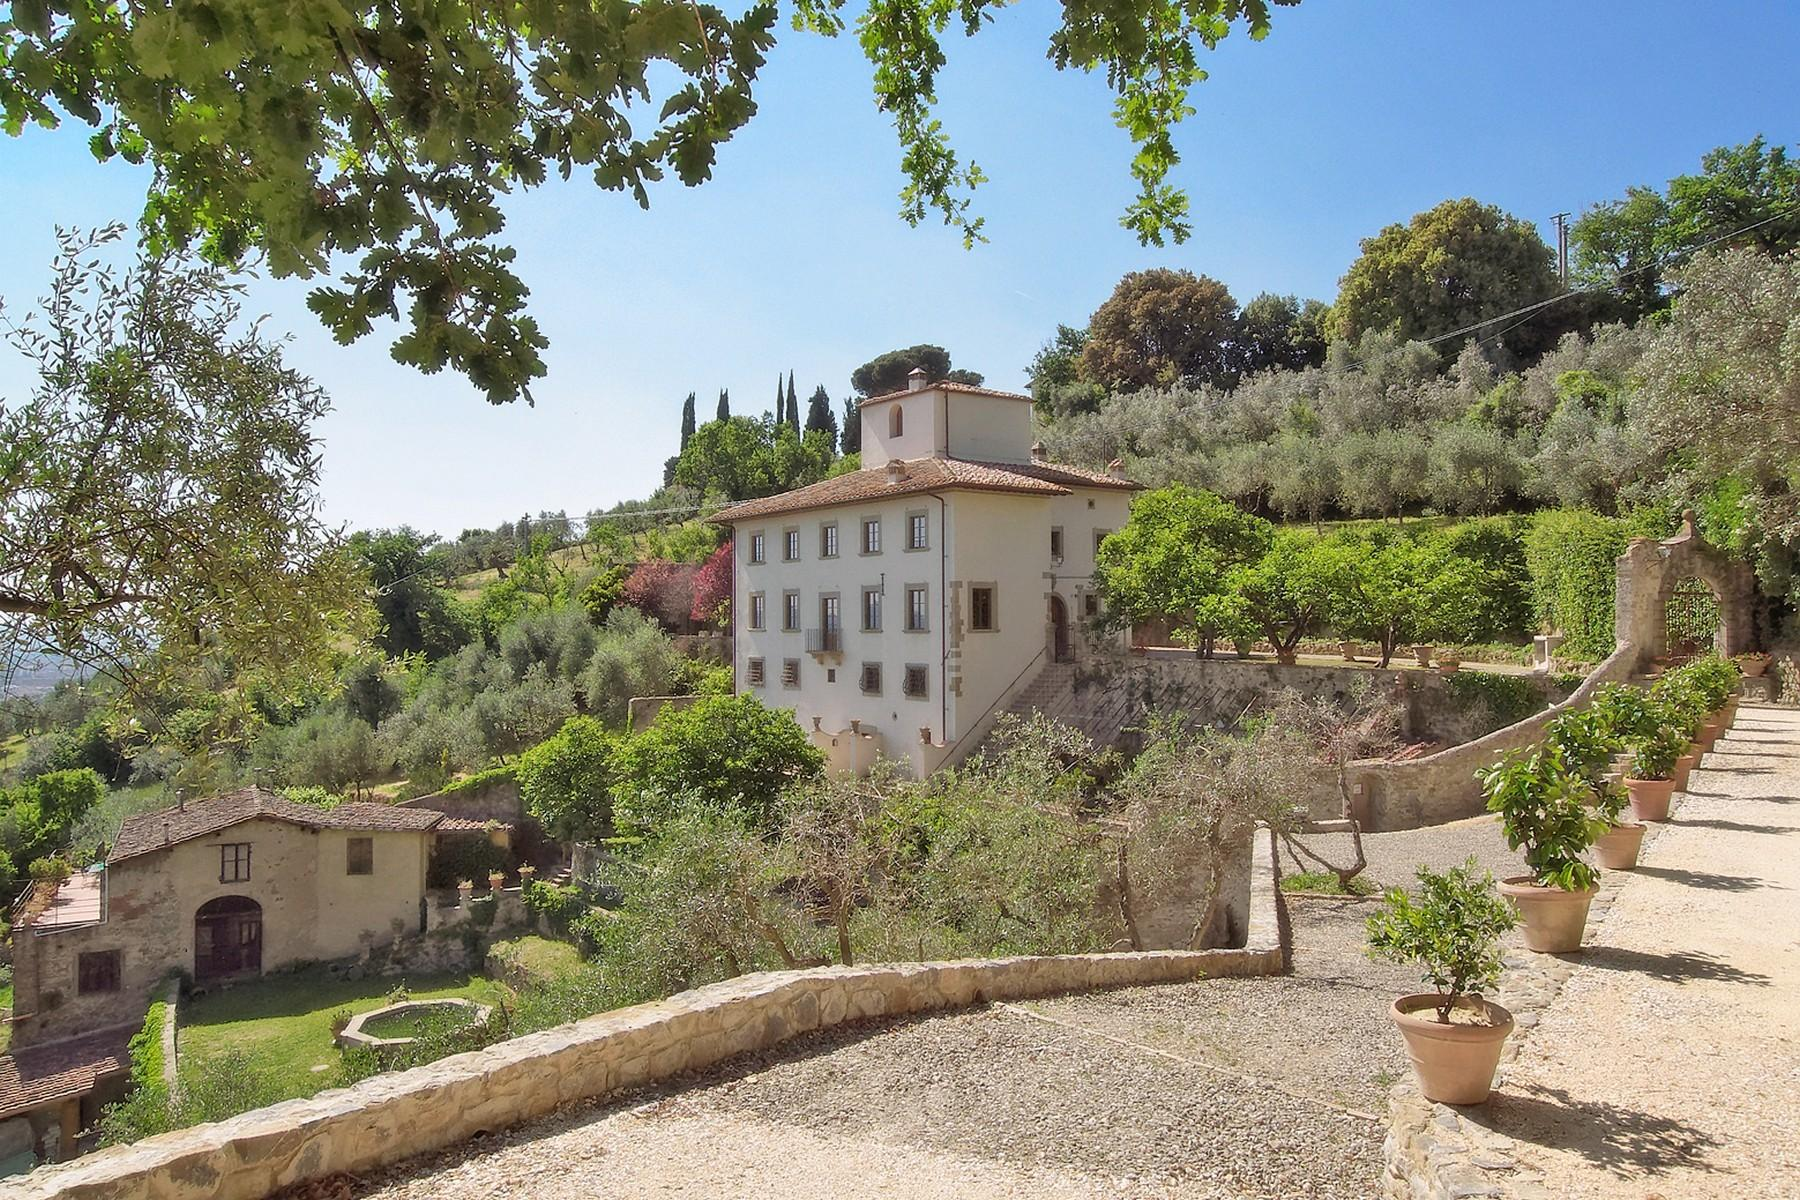 Marvellous villa with pool on the hills of Florence - 2